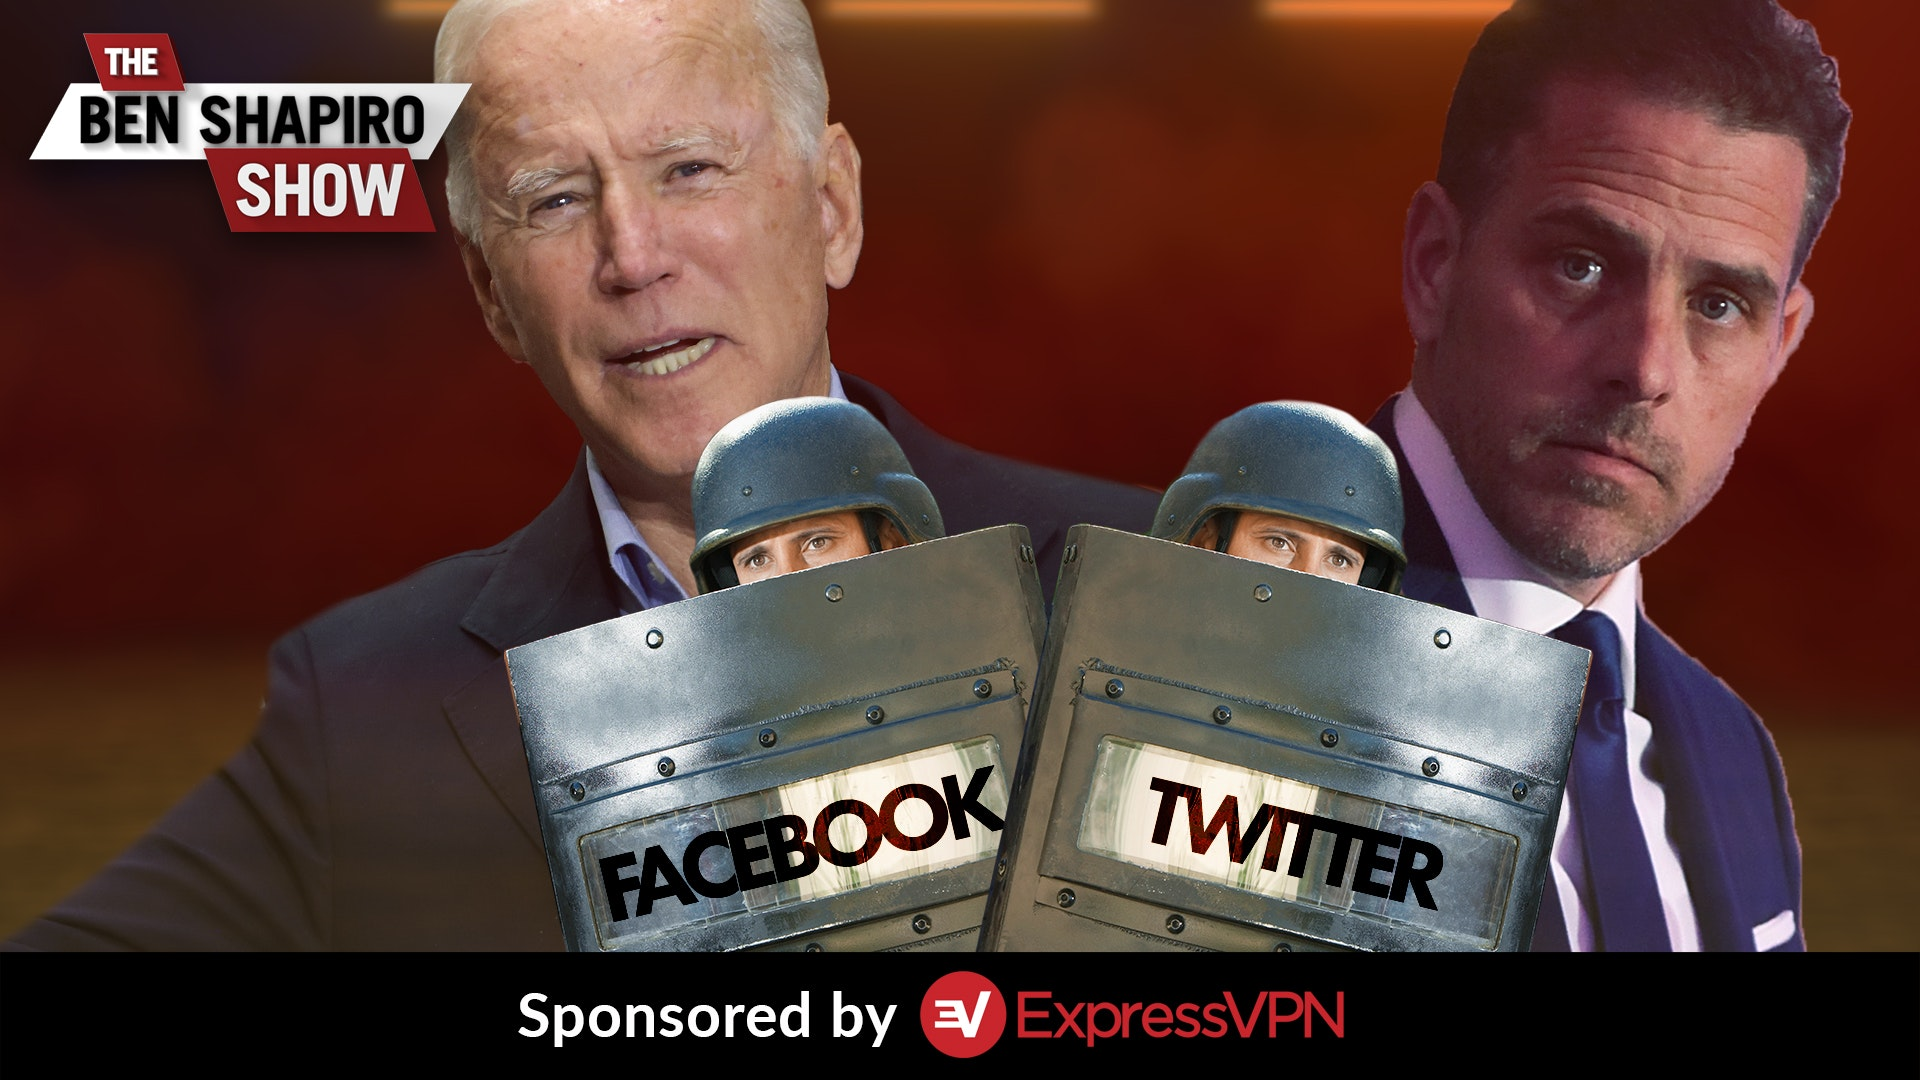 Ep. 1116 - Facebook and Twitter Just Ushered In The Most Dangerous Political Moment In Memory